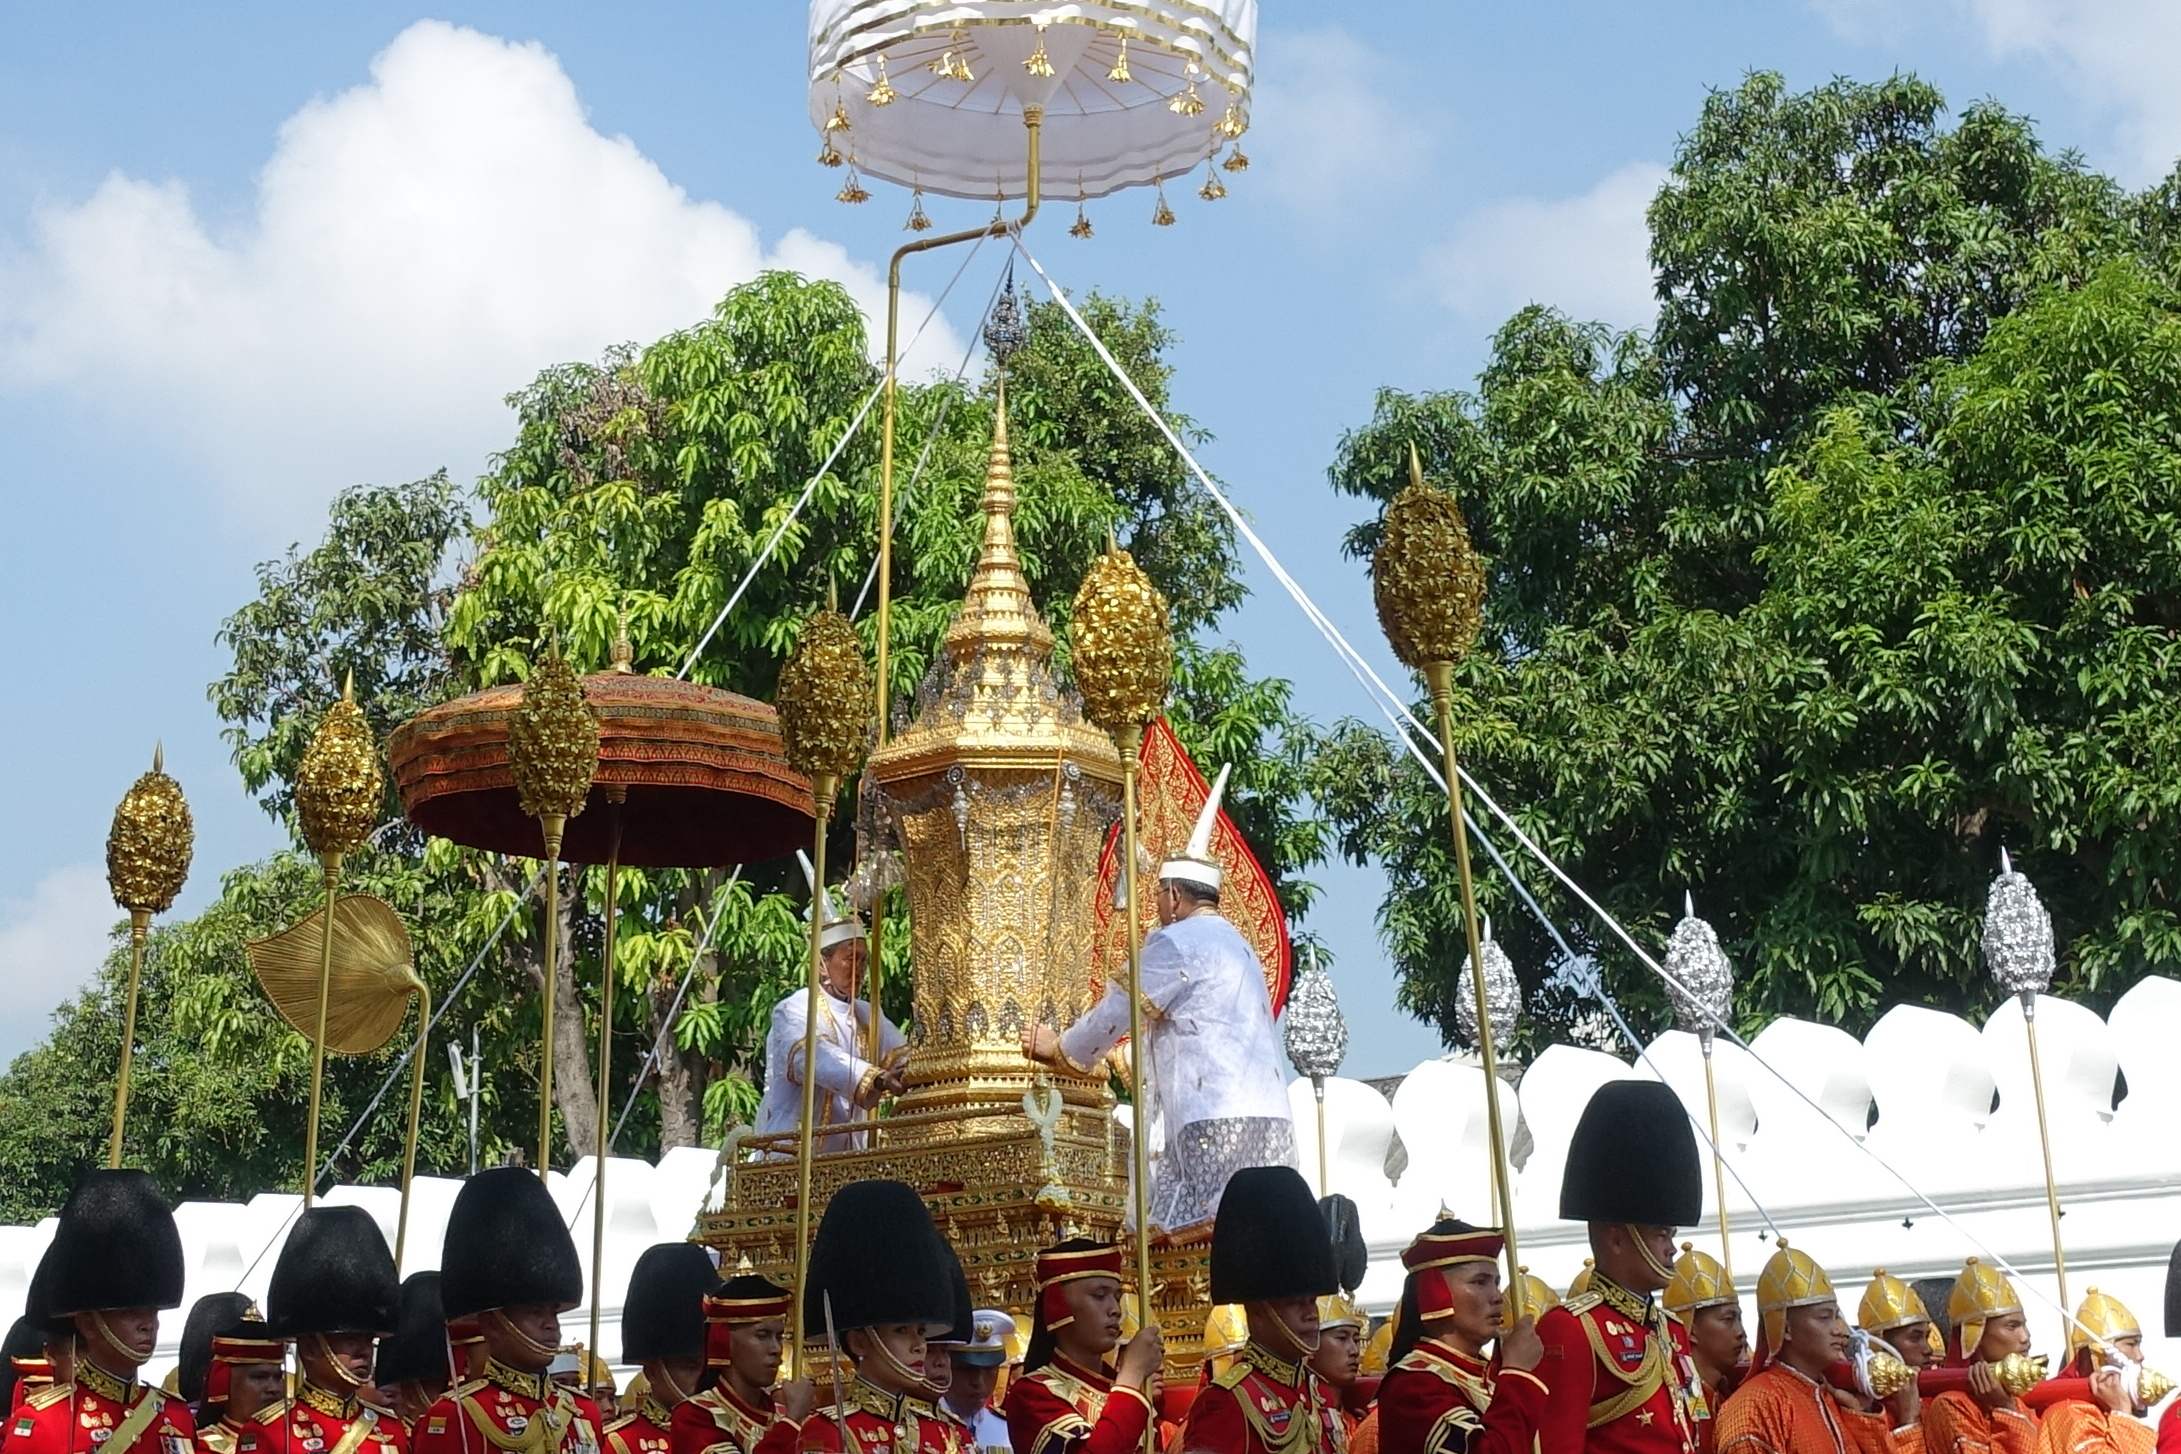 Royal urn of King Bhumibol Adulyadej in the first procession of the royal cremation ceremony.